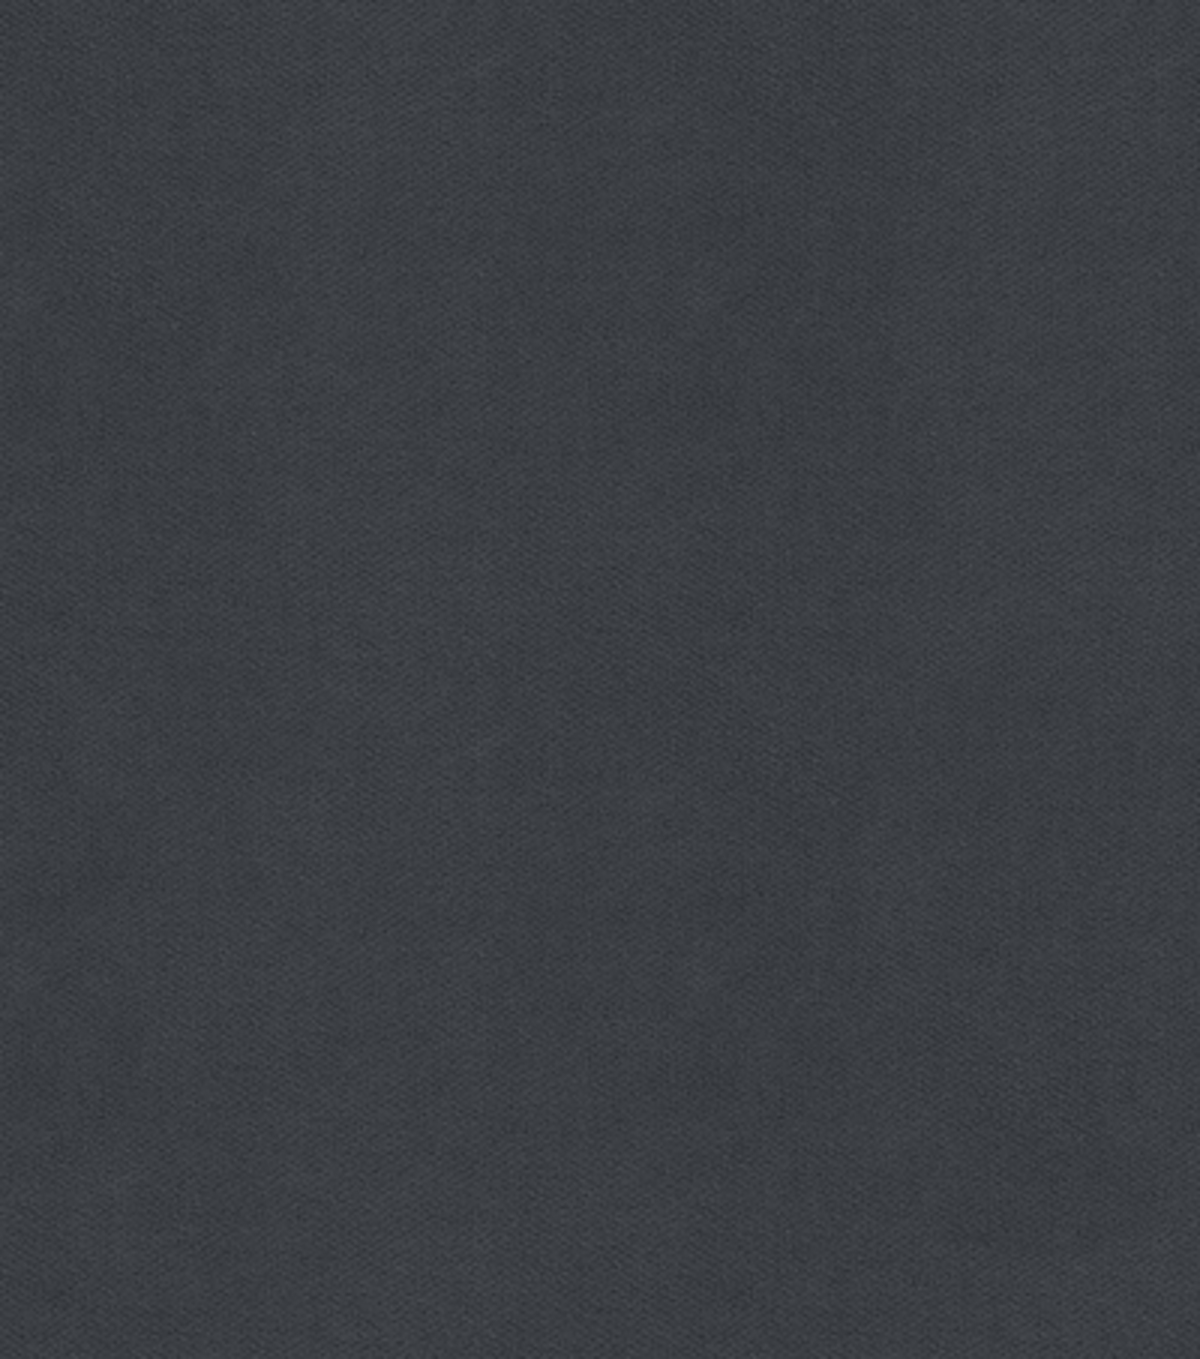 Home Decor 8\u0022x8\u0022 Fabric Swatch-Como-888-Dark Grey